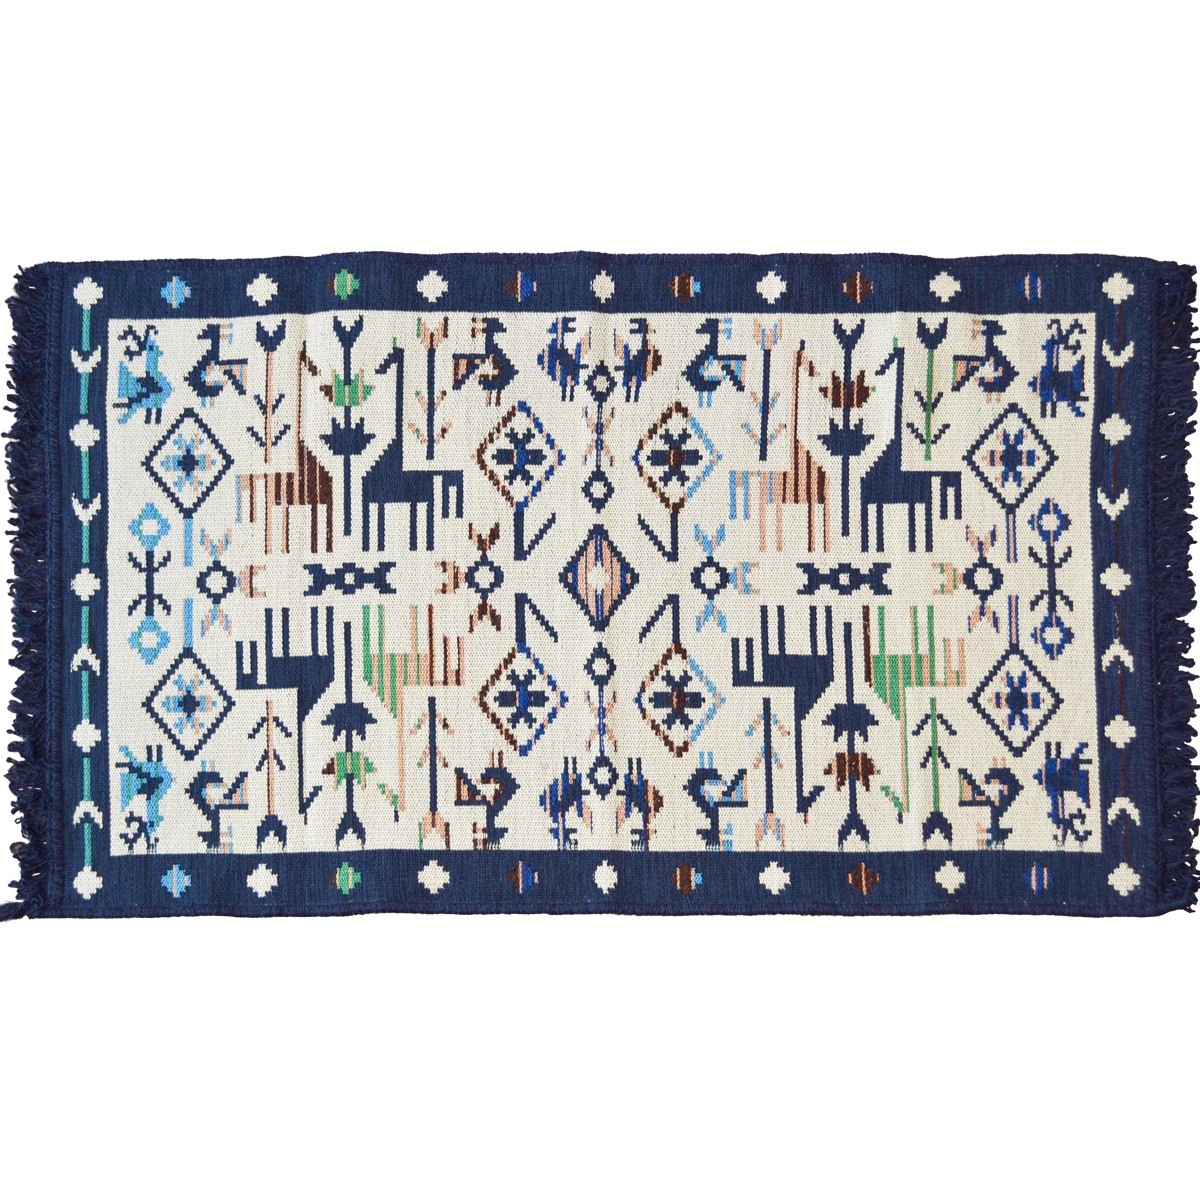 Elati Ethnic Carpet, Greek Blue